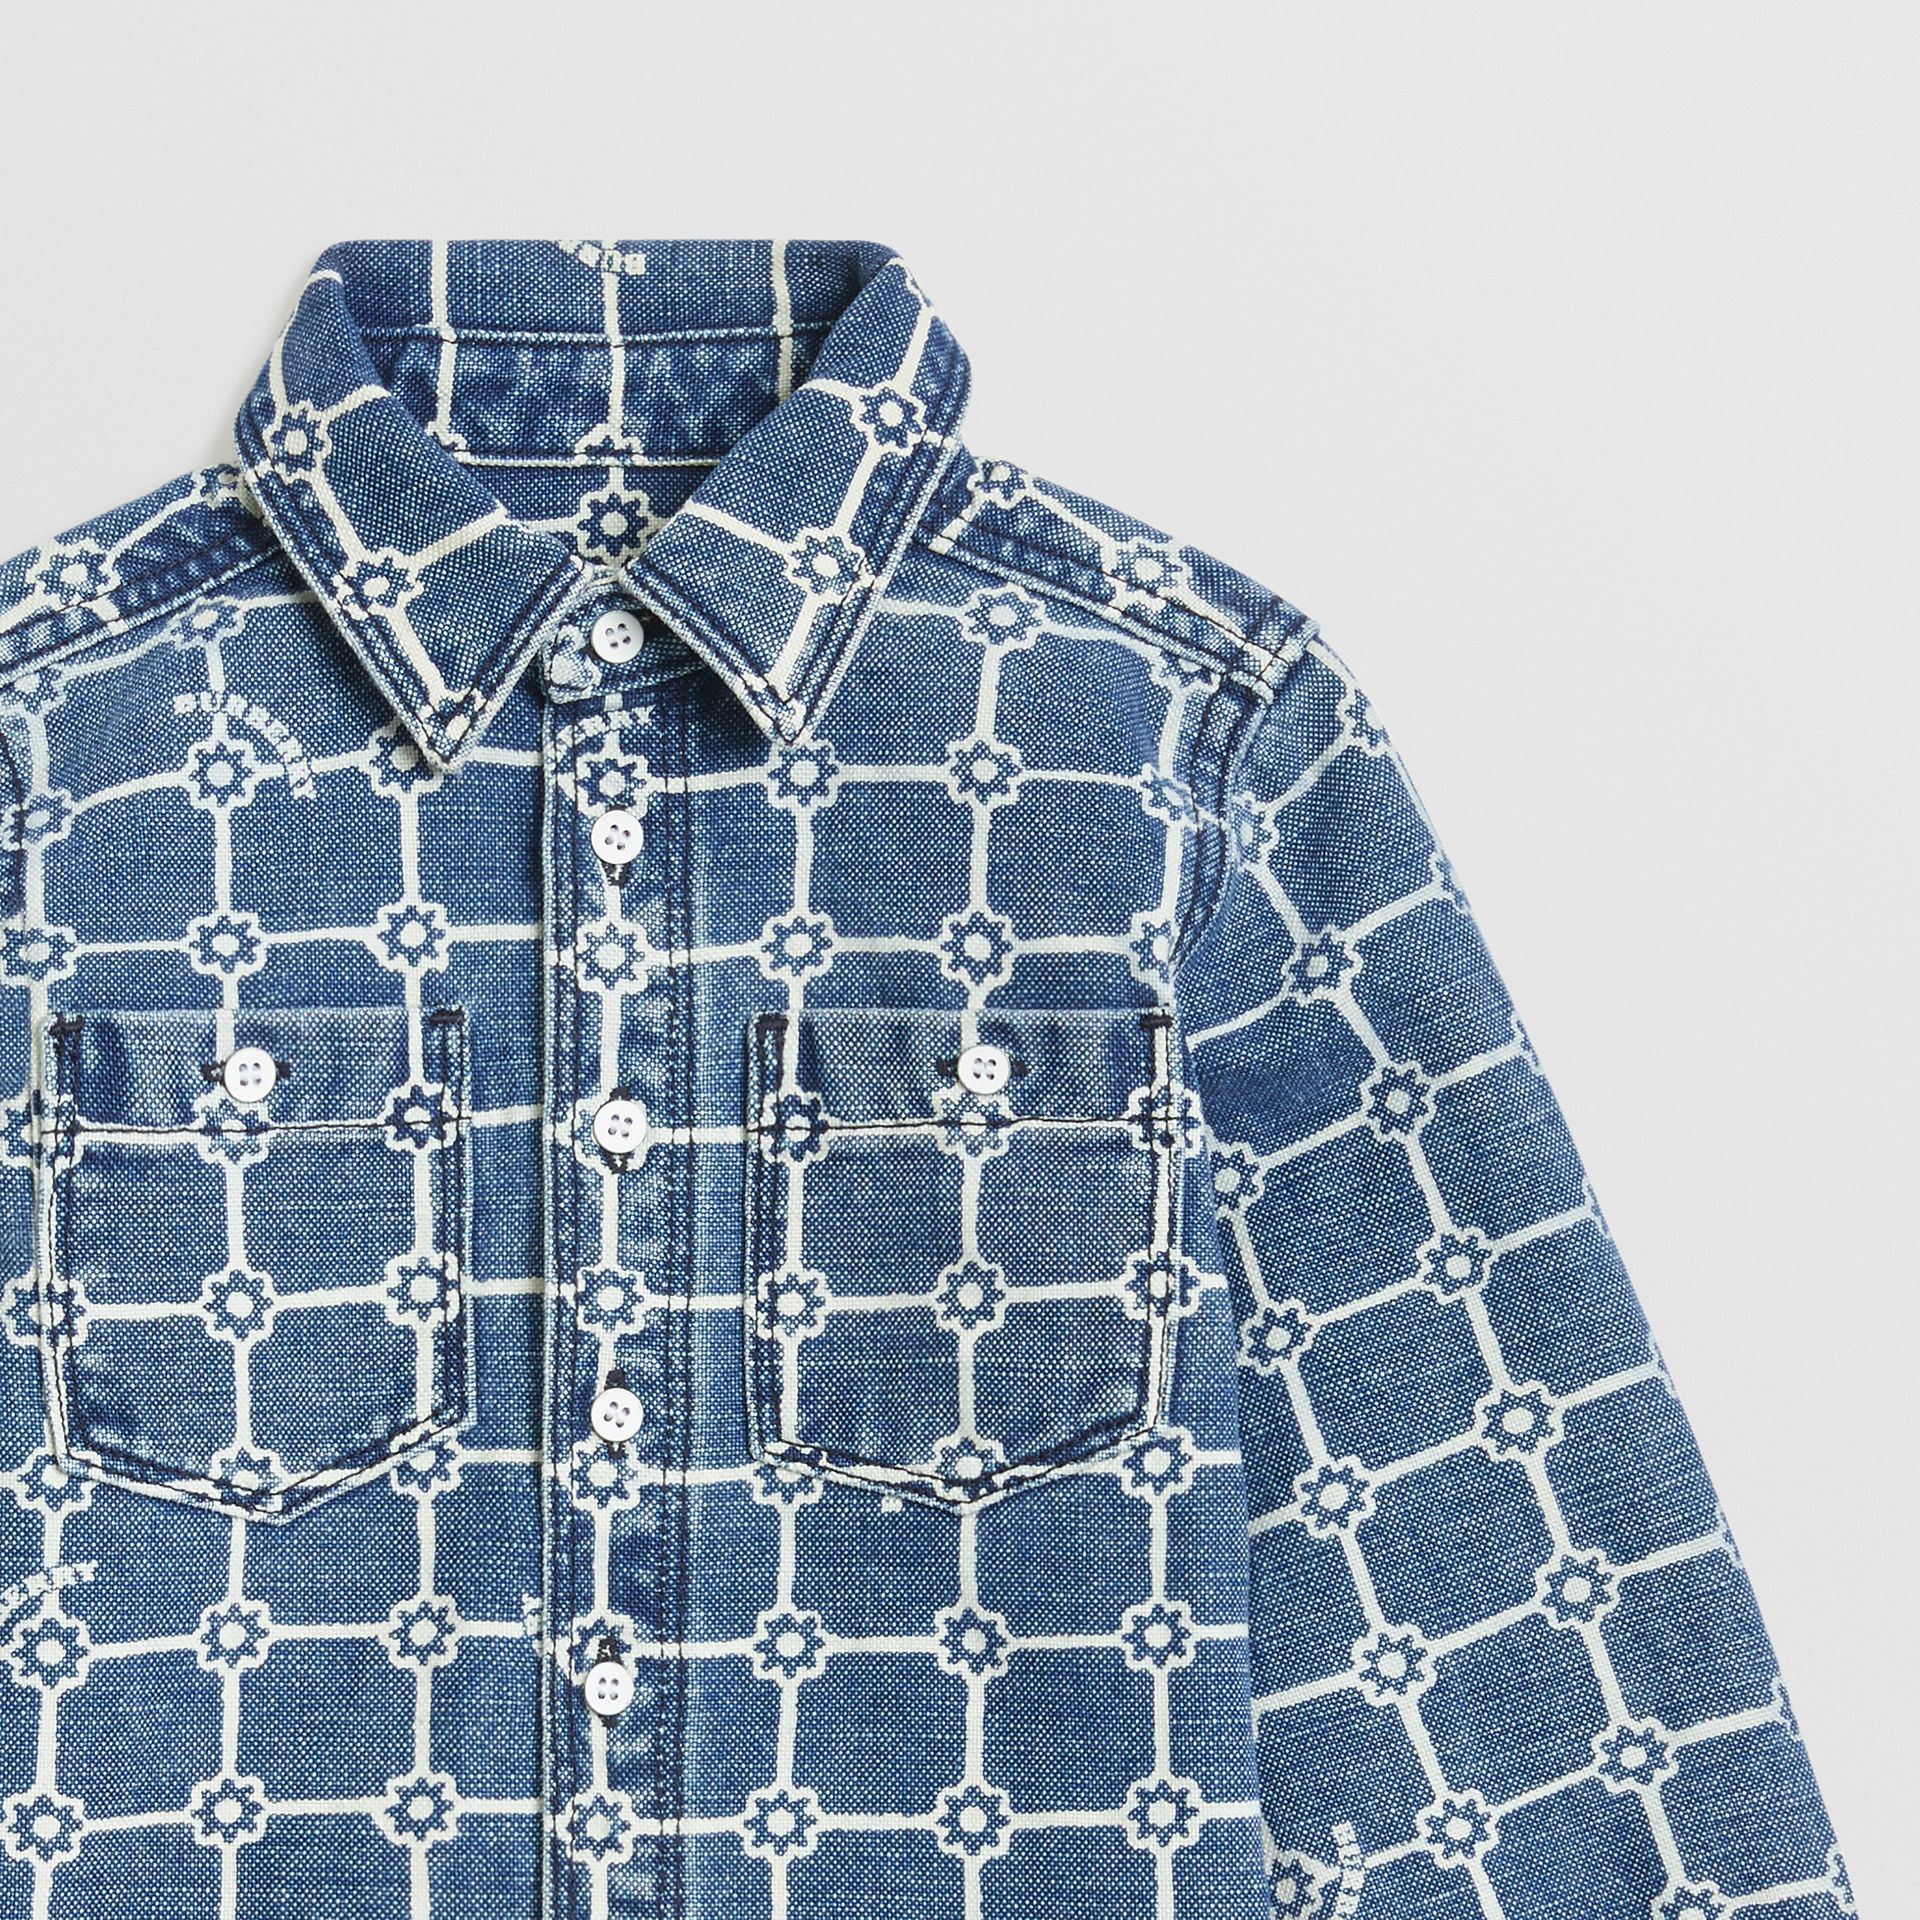 Flower Print Cotton Linen Shirt in Indigo | Burberry United States - gallery image 4